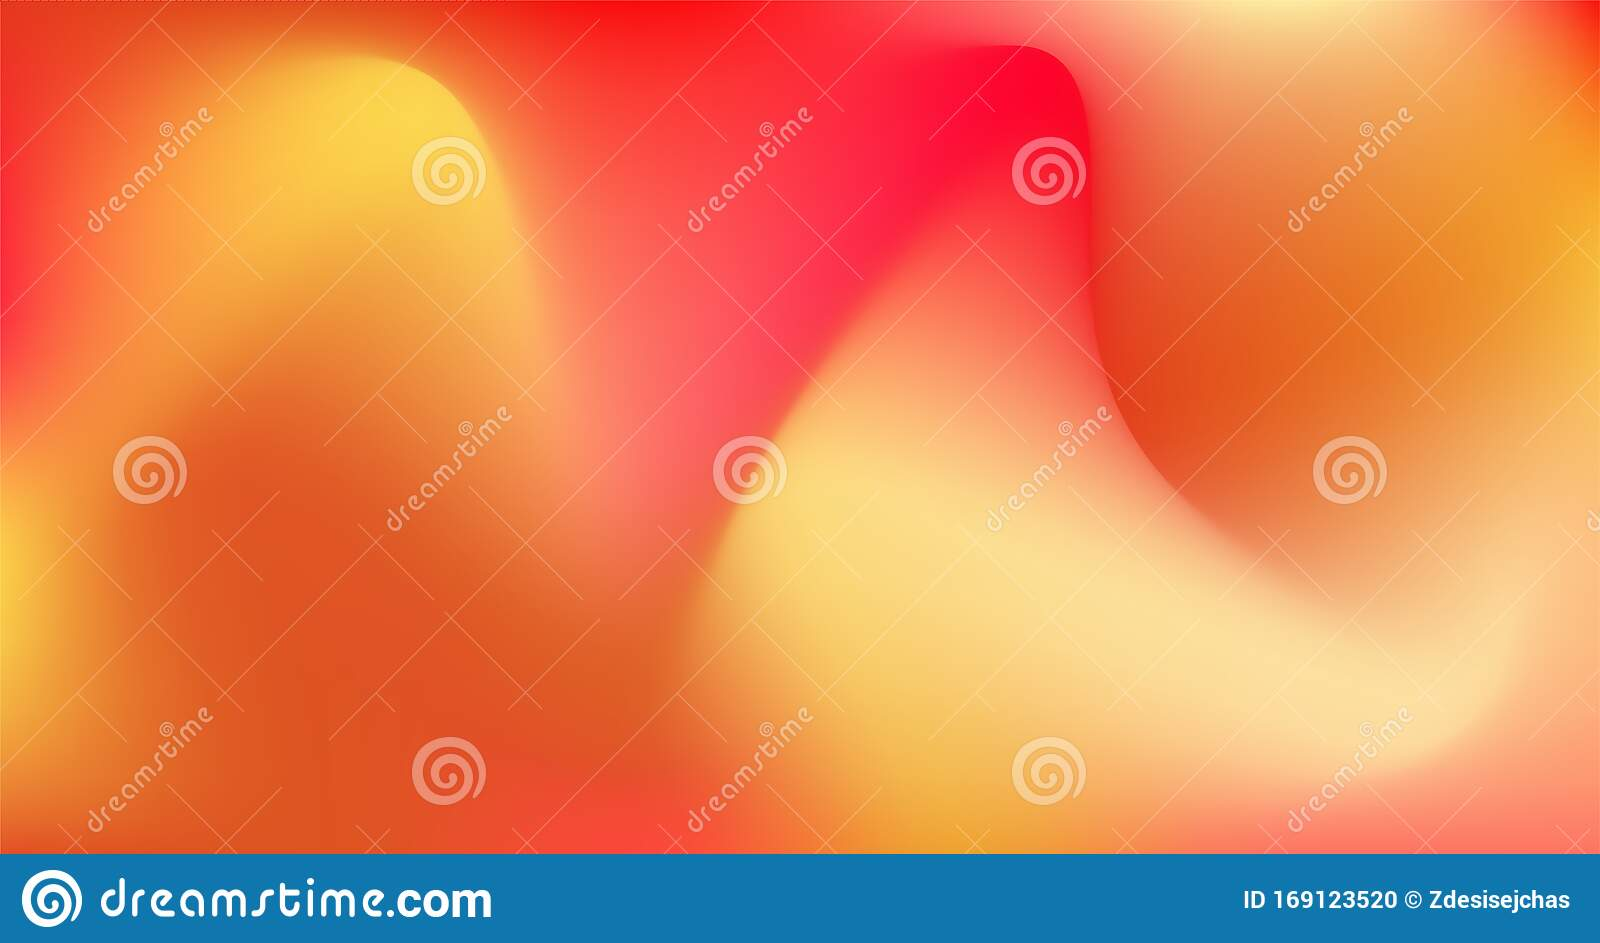 red yellow pink tropical gradient background fluid neon bright trendy wallpaper elegant colorful vibrant defocused horizontal 169123520